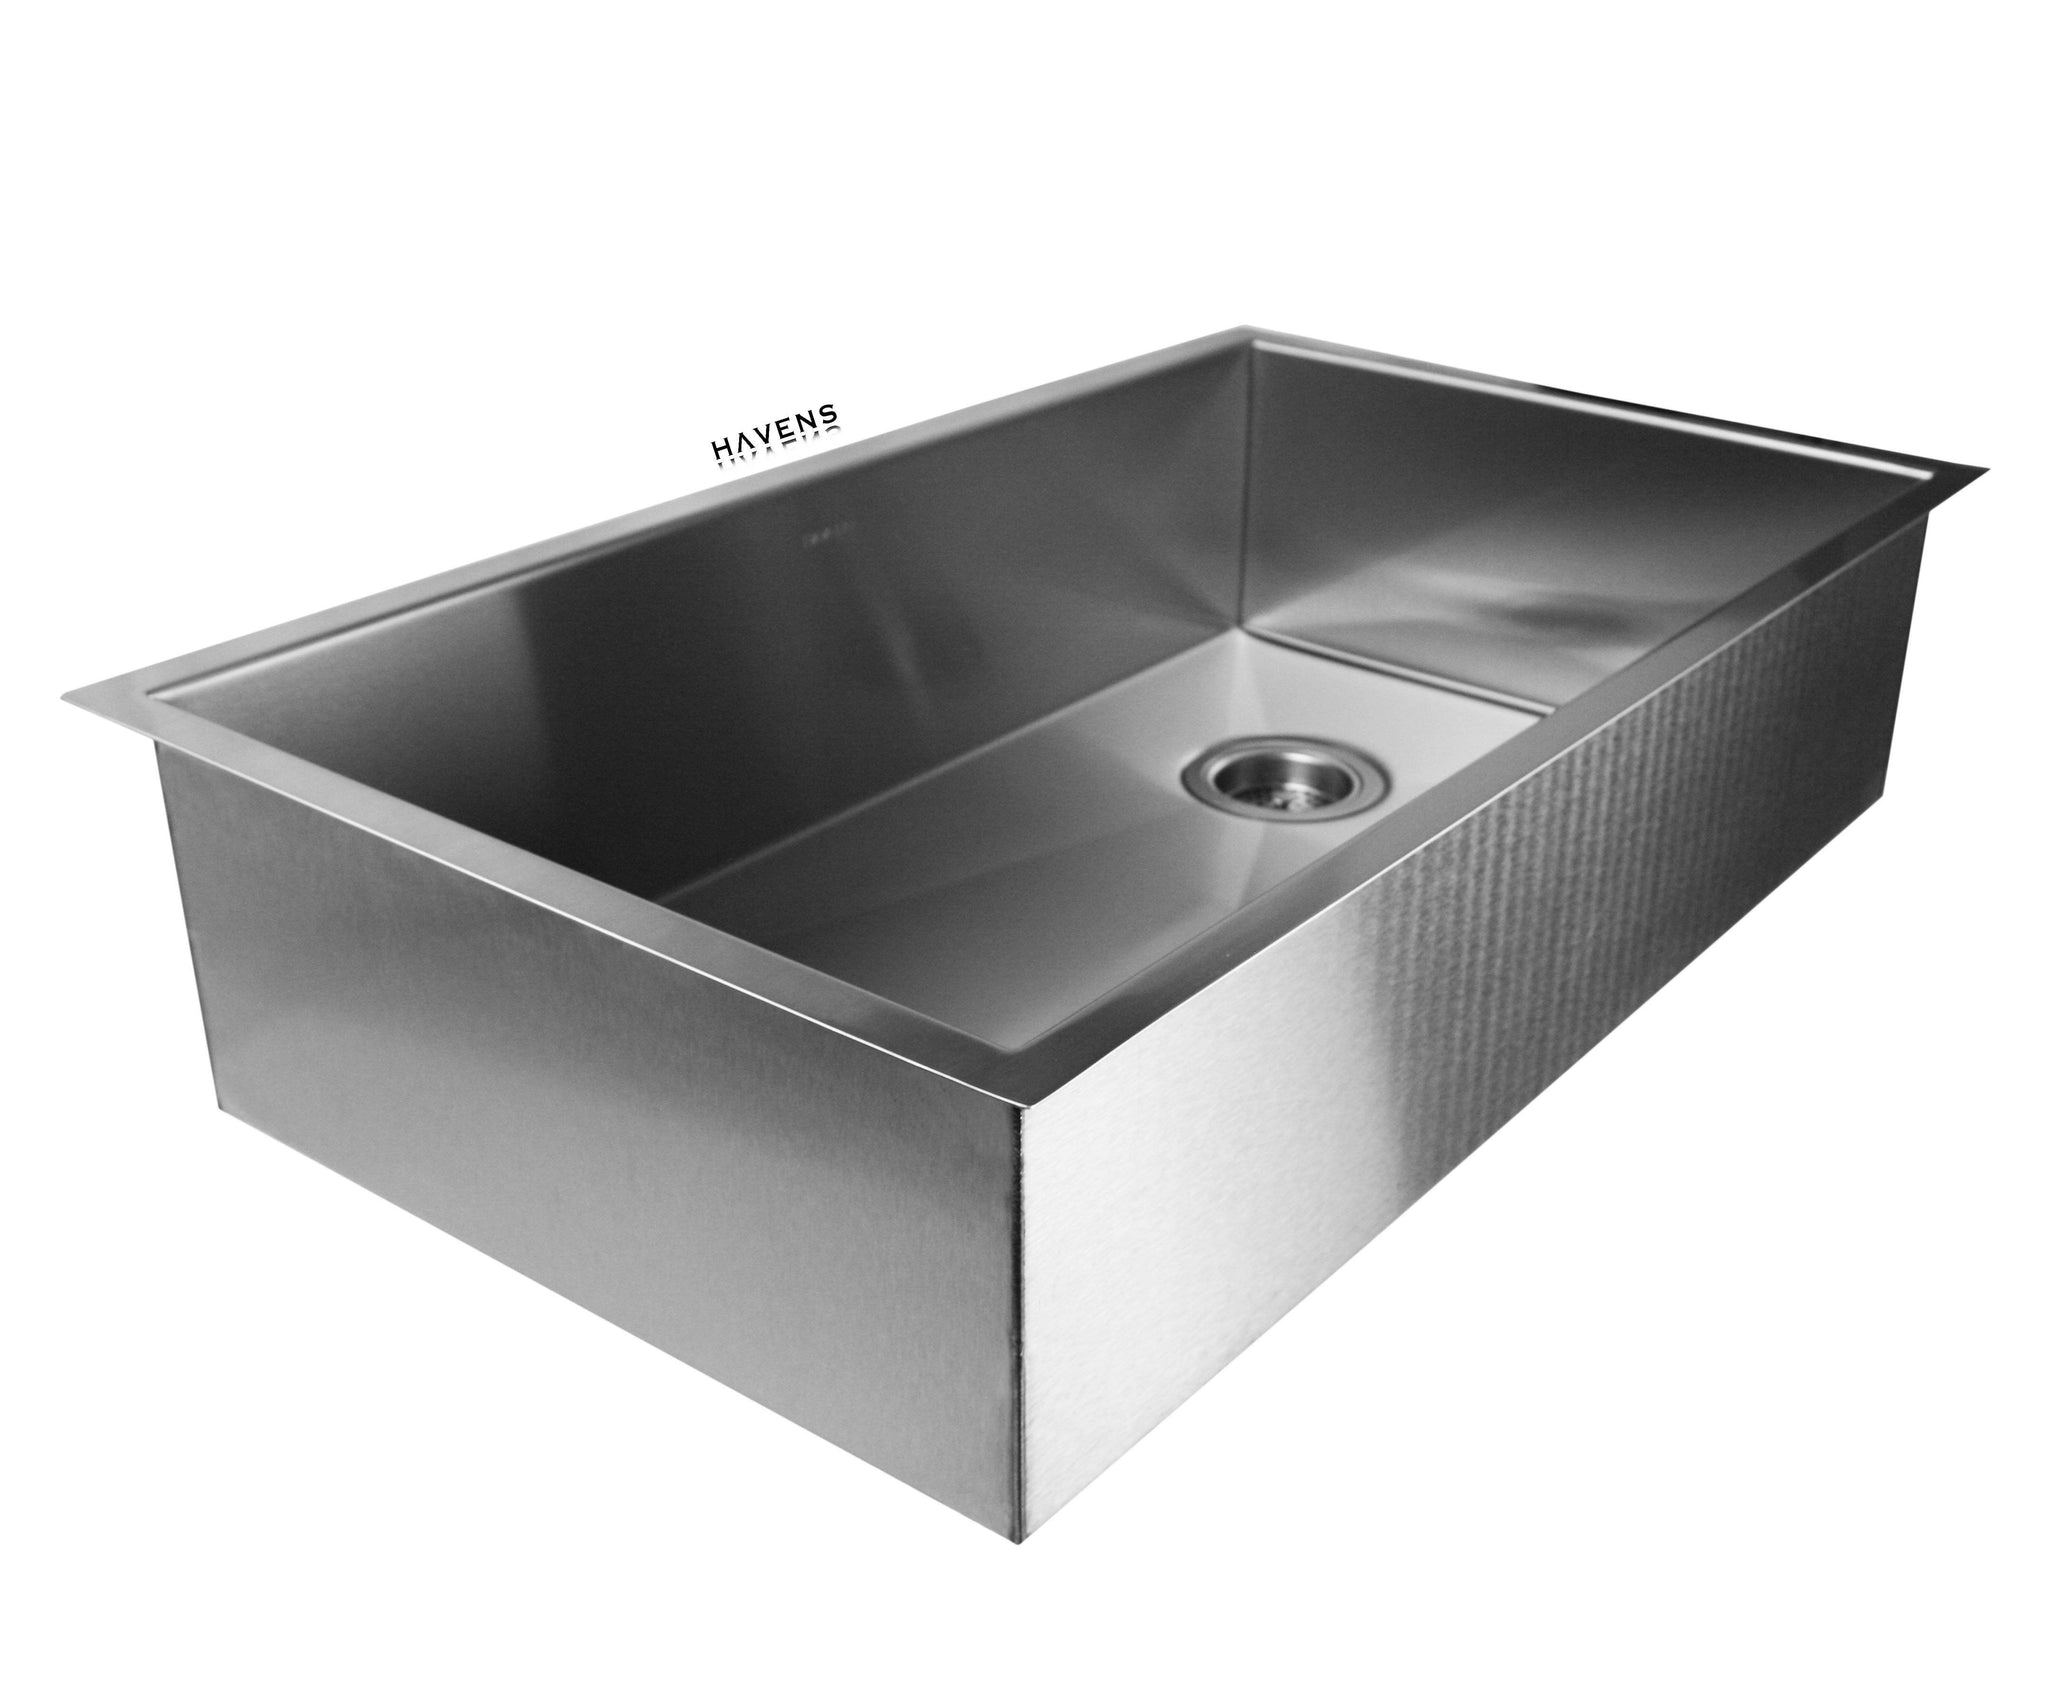 Stainless steel under mount sink with a right rear drain placement.